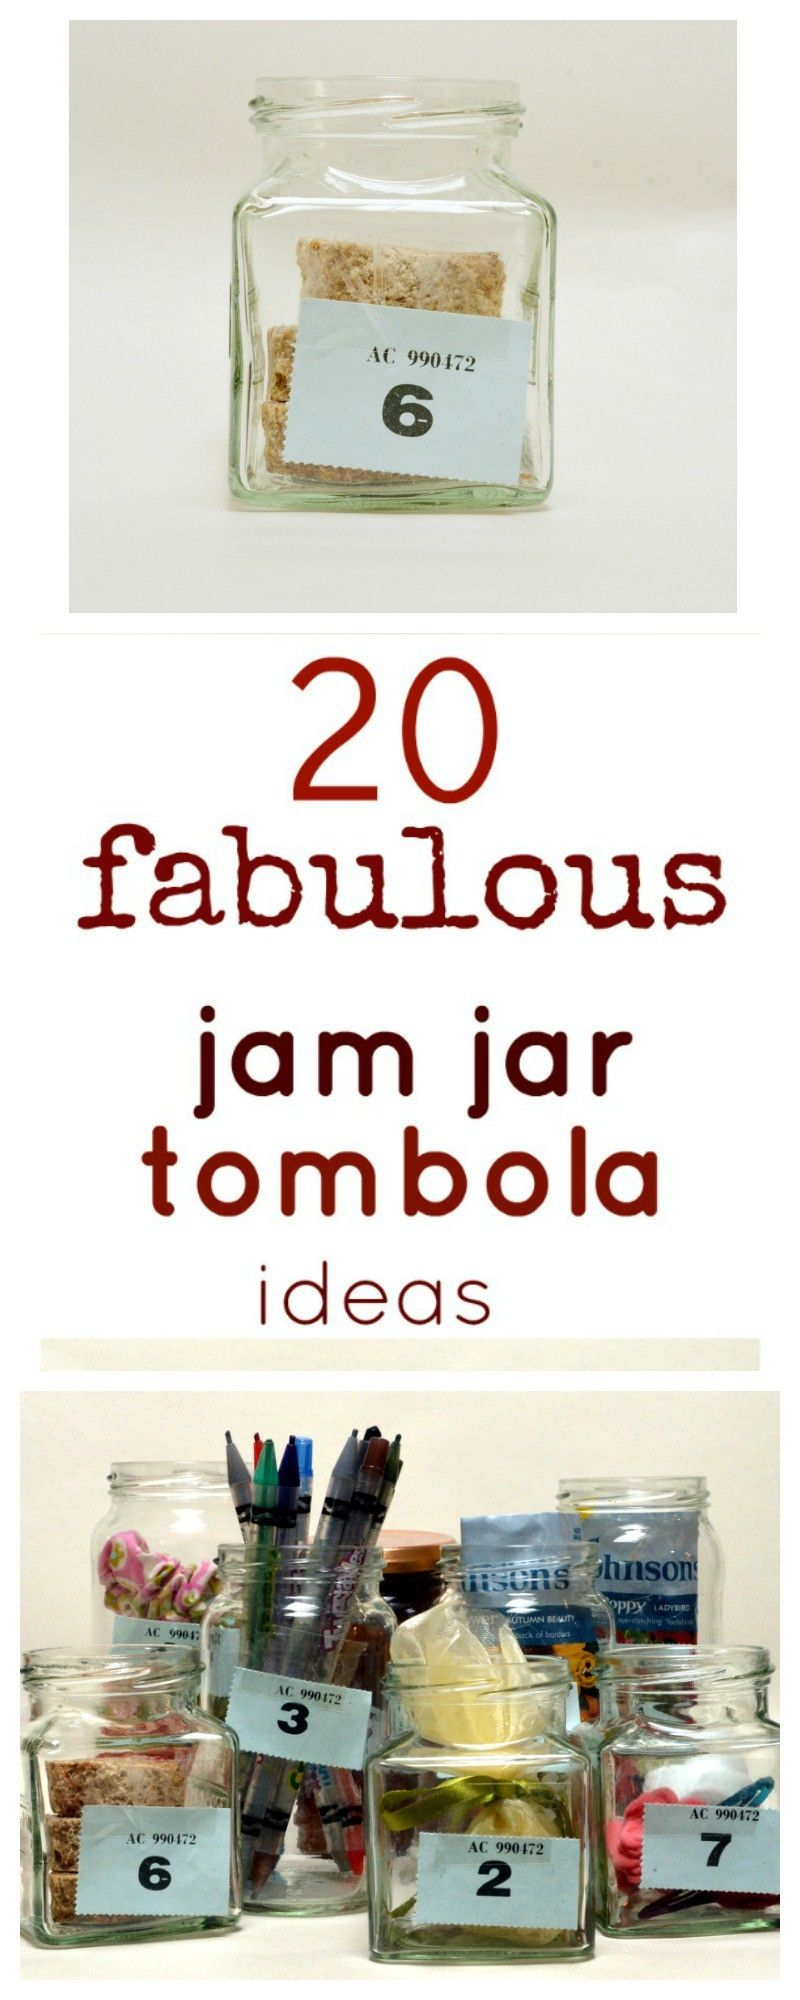 Fun Ideas For Filling Jam Jars For Fundraising Tombolas Christmas Fundraising Ideas Fun Fundraisers Charity Work Ideas